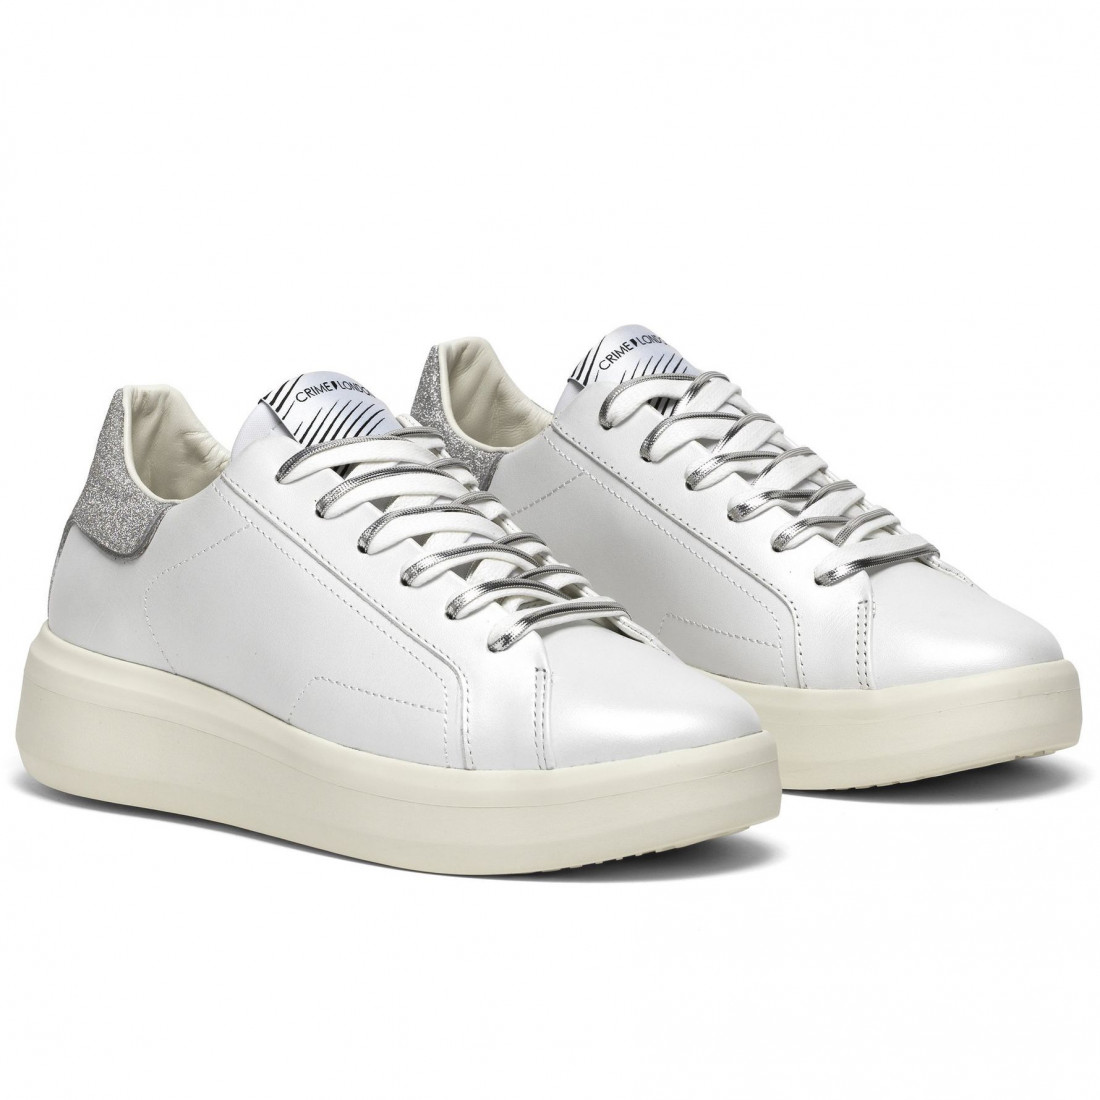 sneakers donna crime london 2530610 bianco 8440